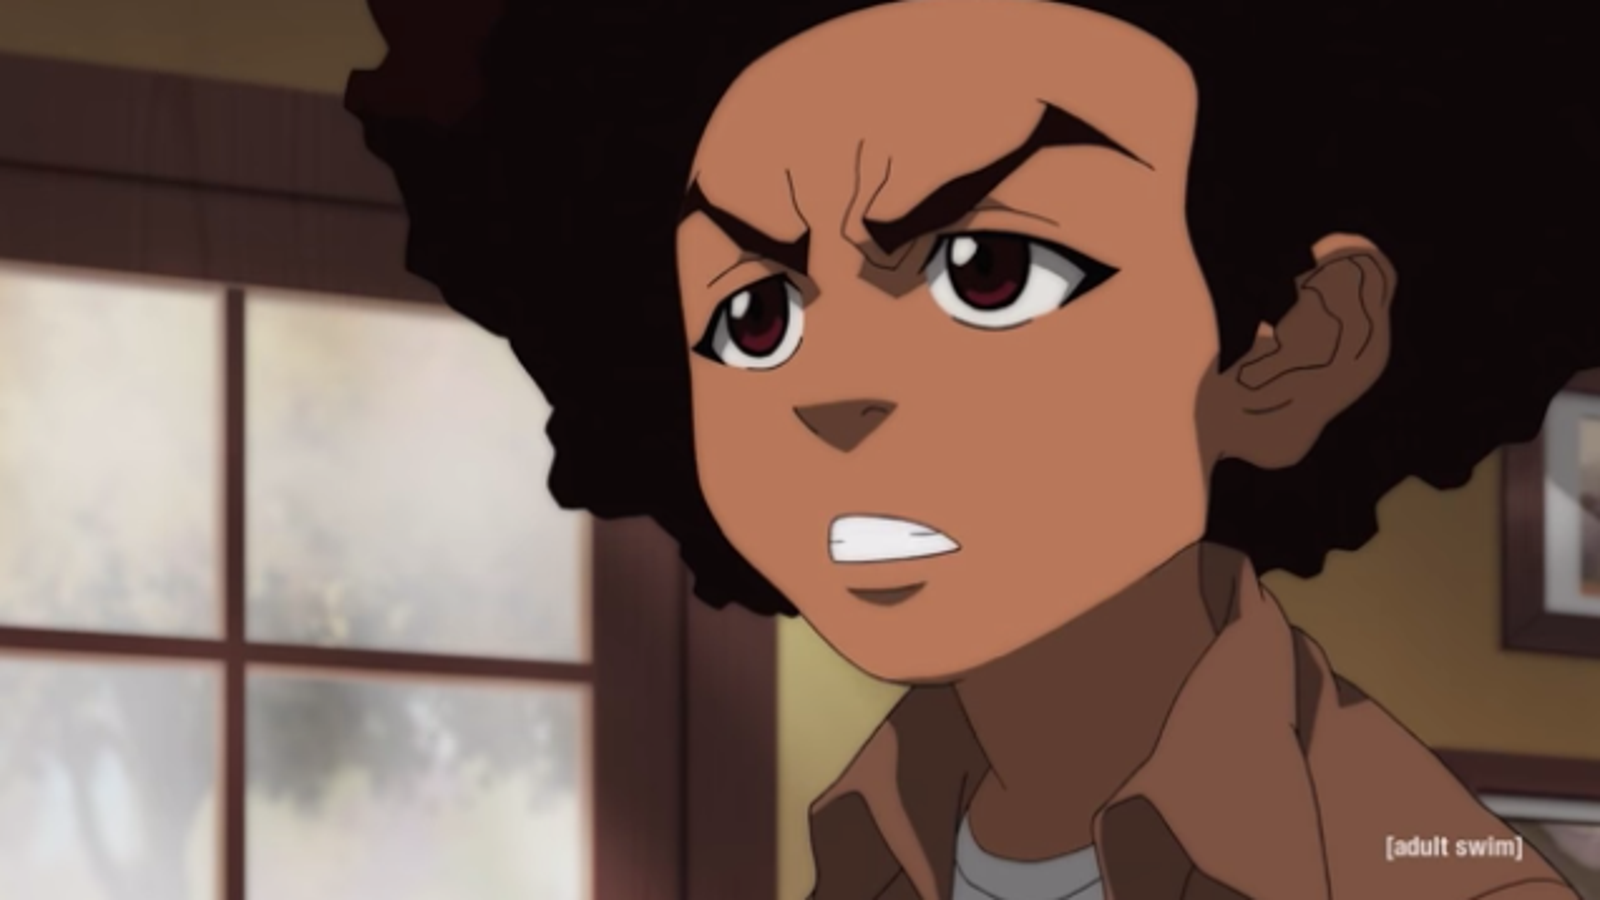 Theyre Coming Baaack The Boondocks Is Returning To Tv With Series Creator Aaron Mcgruder On Board